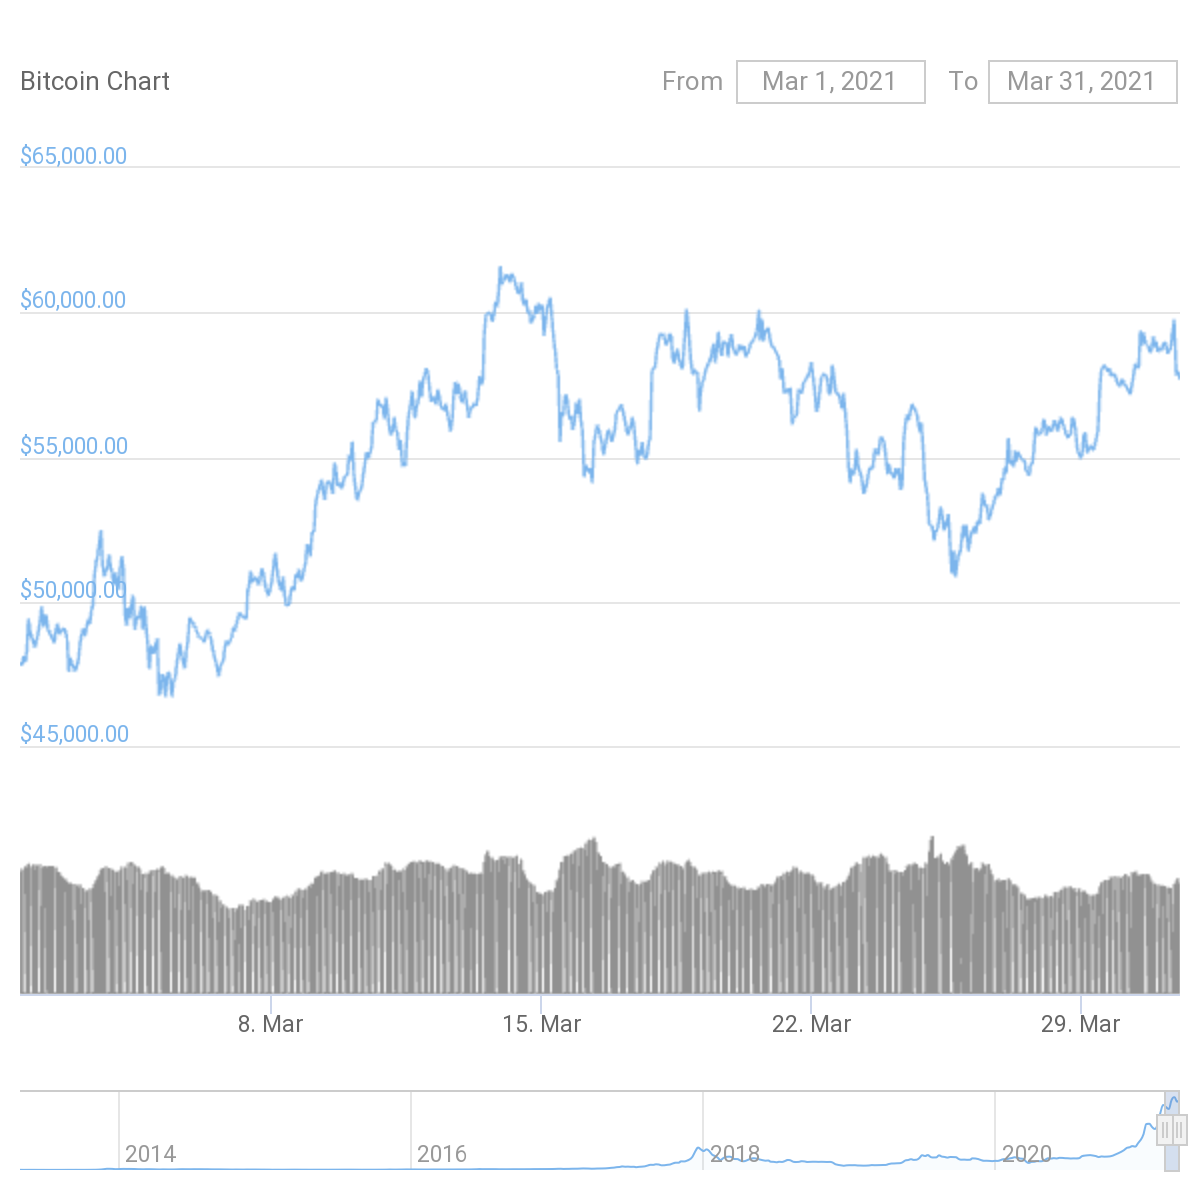 March Market Wrap Up - Bitcoin and Ether 2